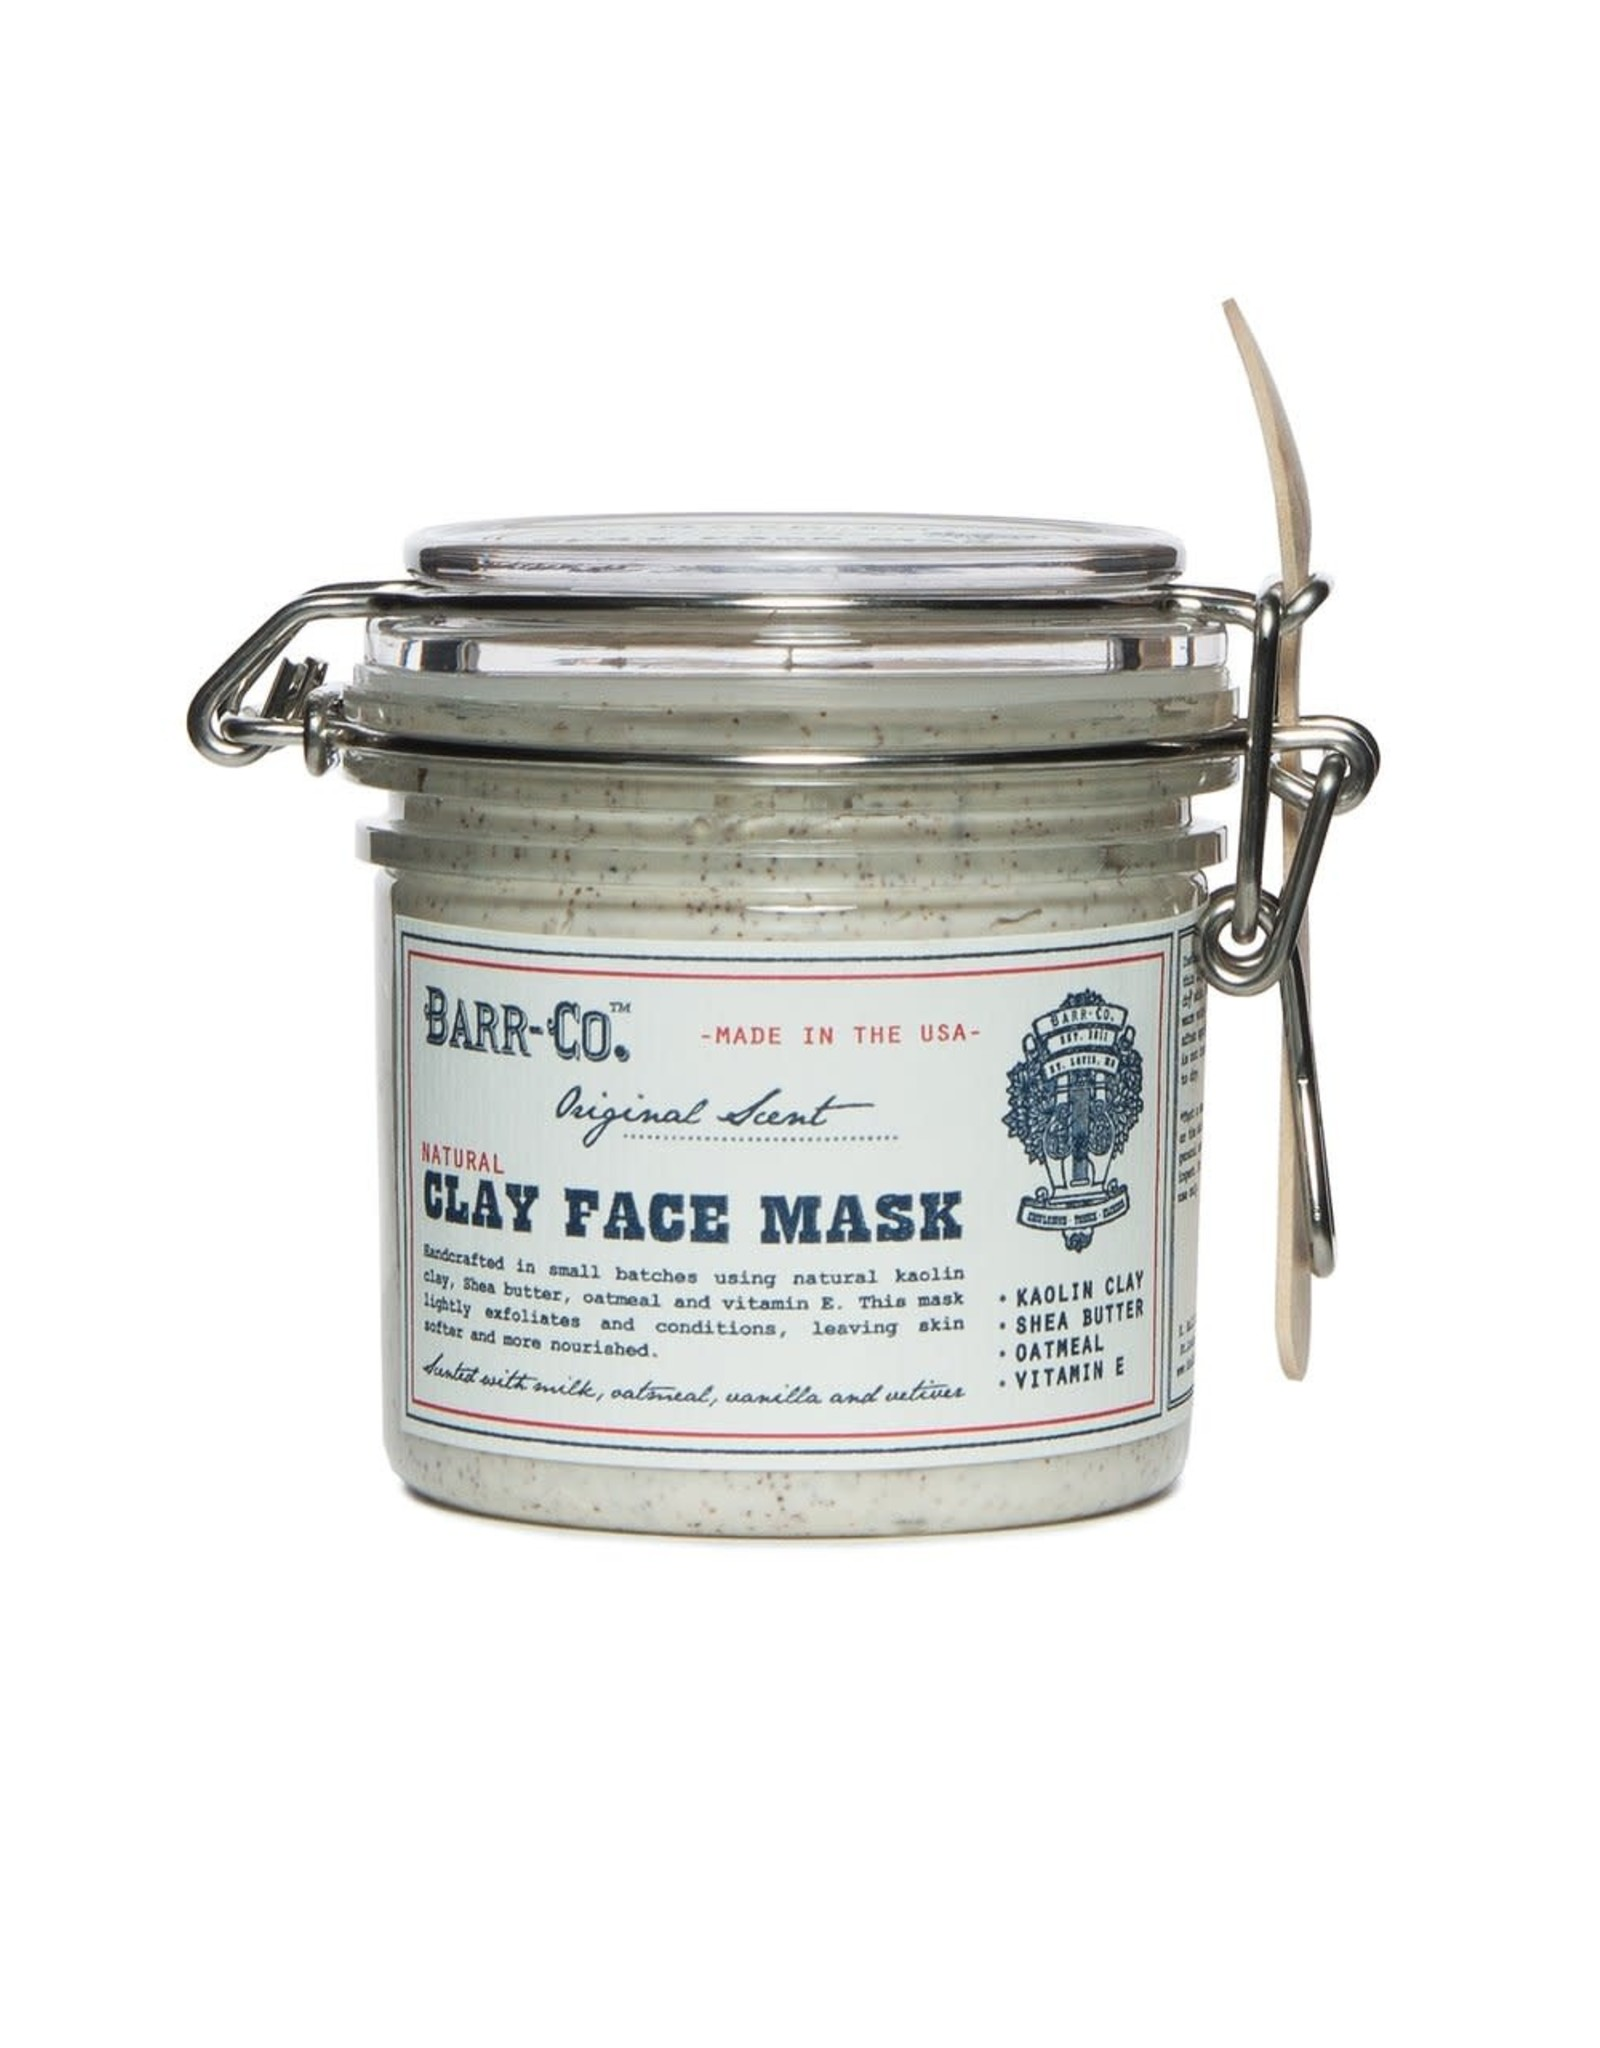 Bco Clay Face Mask